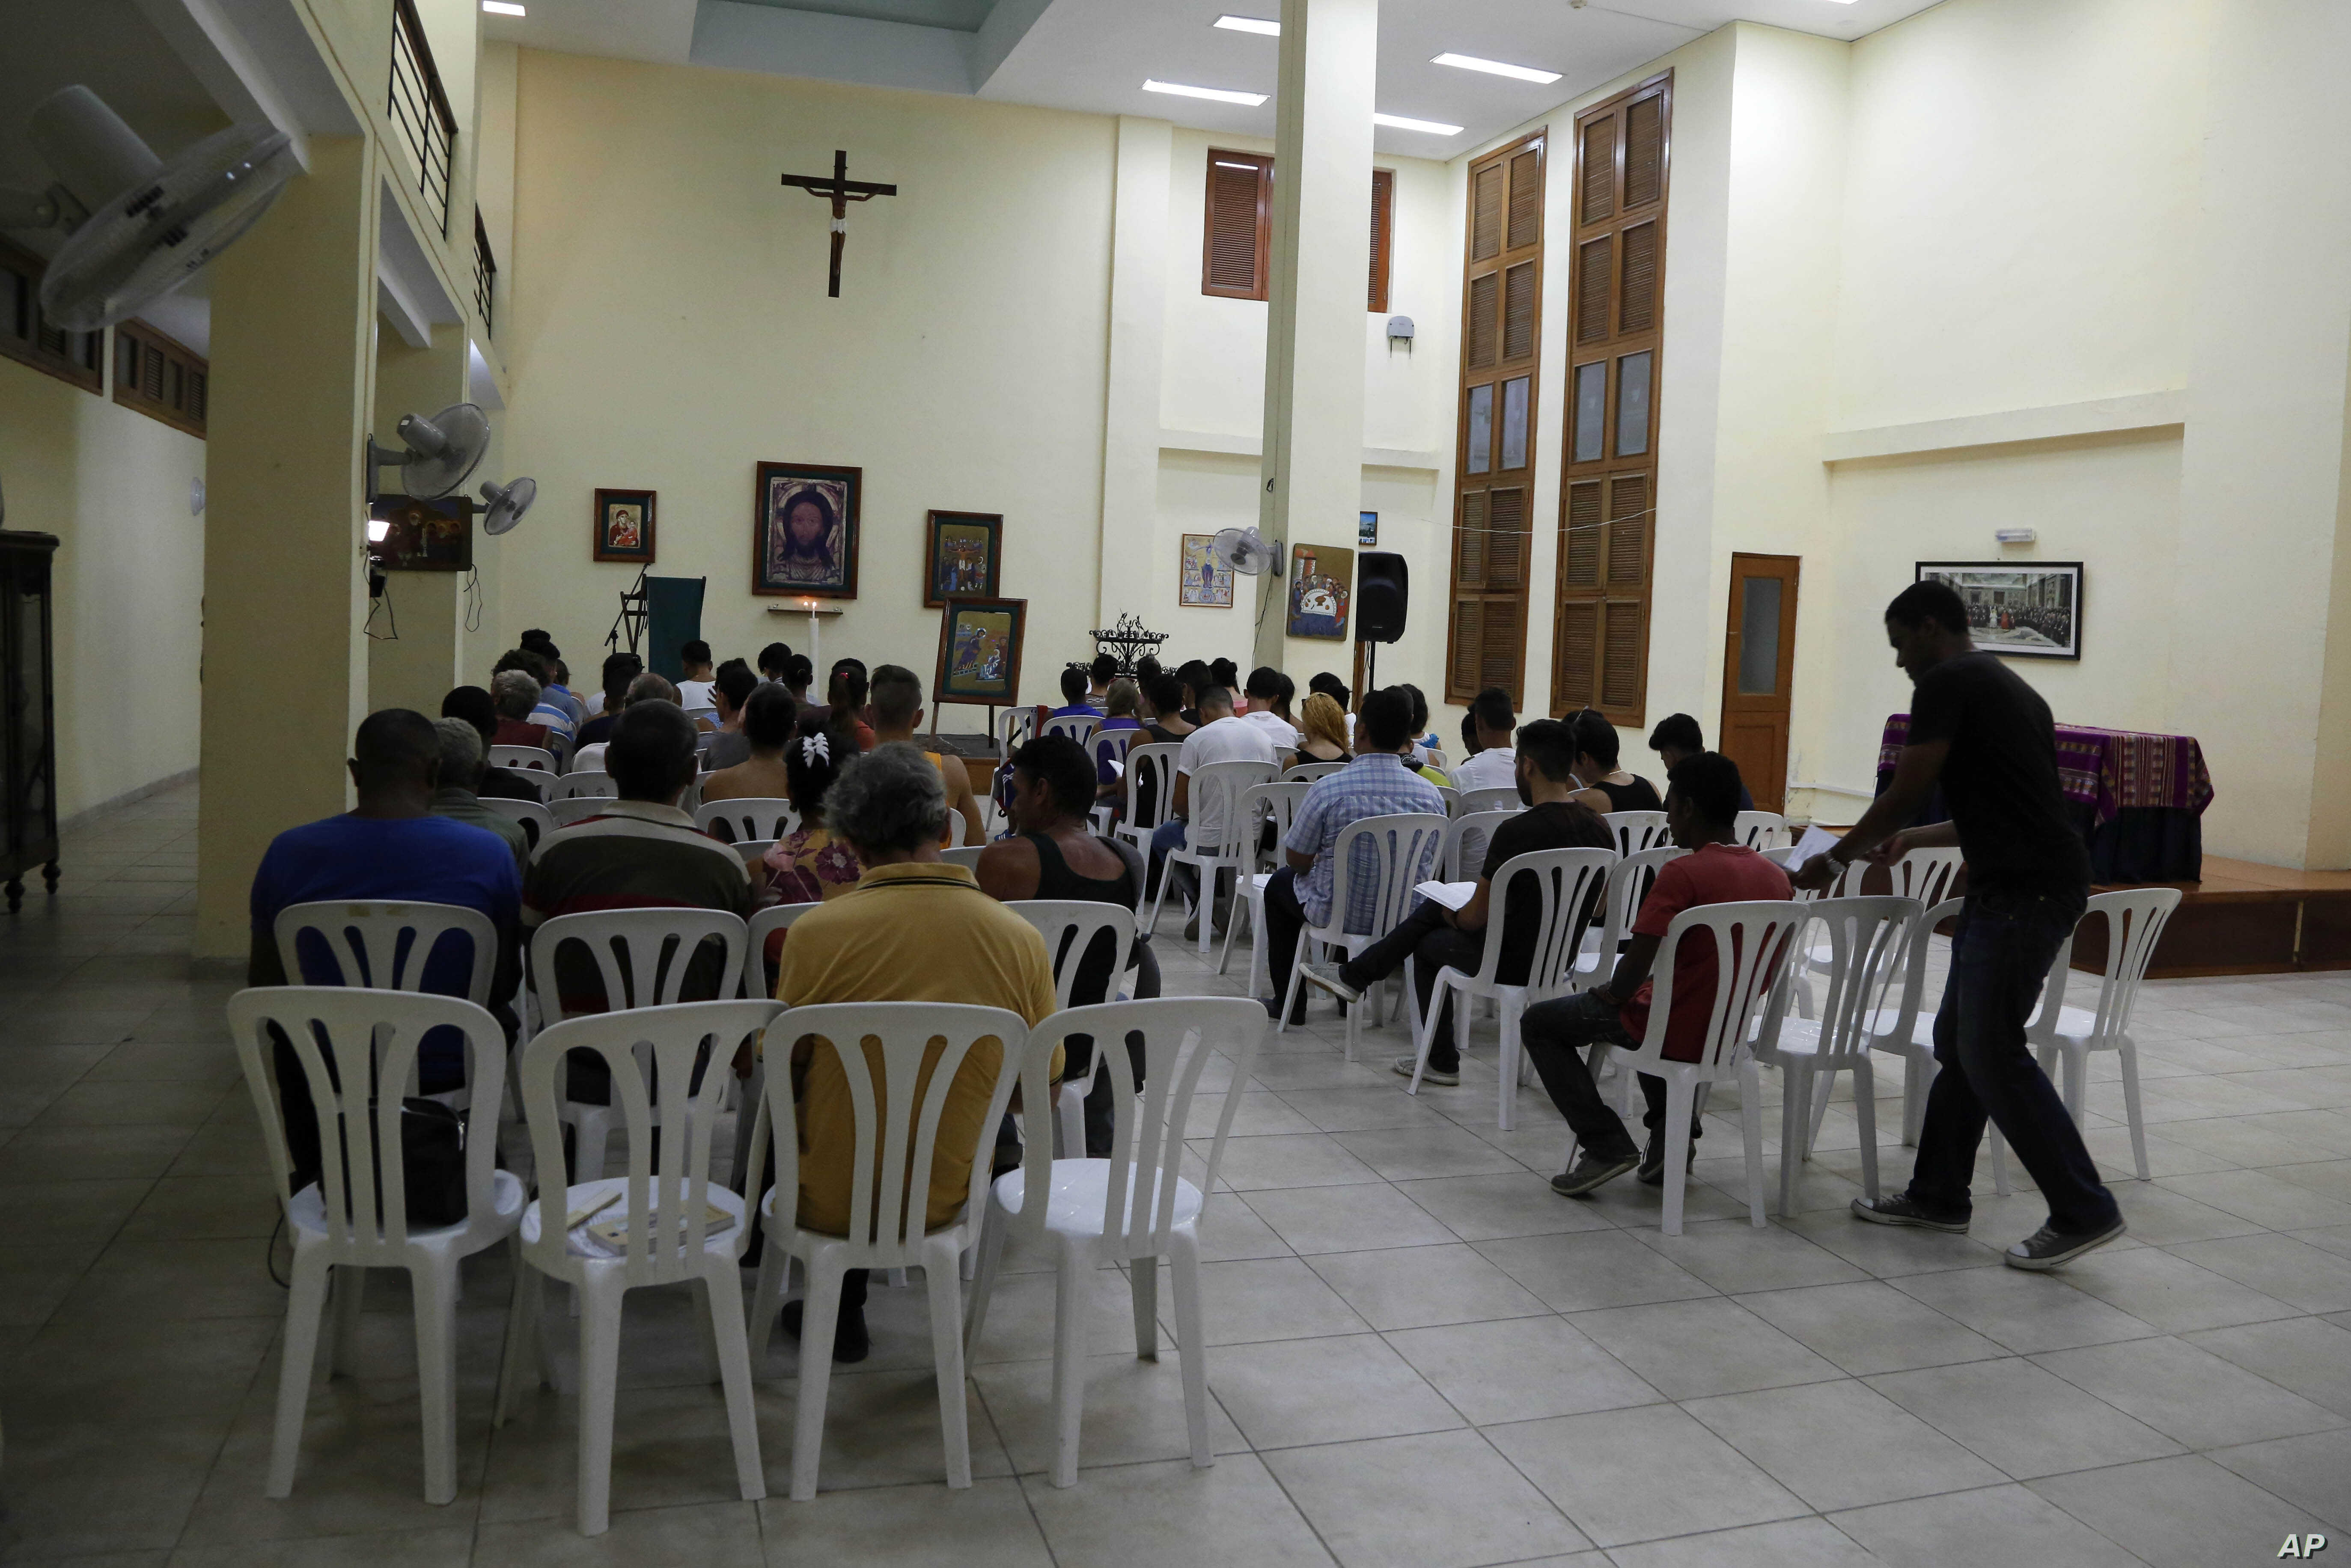 In this Aug. 21, 2015, photo, people helped by the San Egidio Church attend a prayer service in Havana, Cuba.